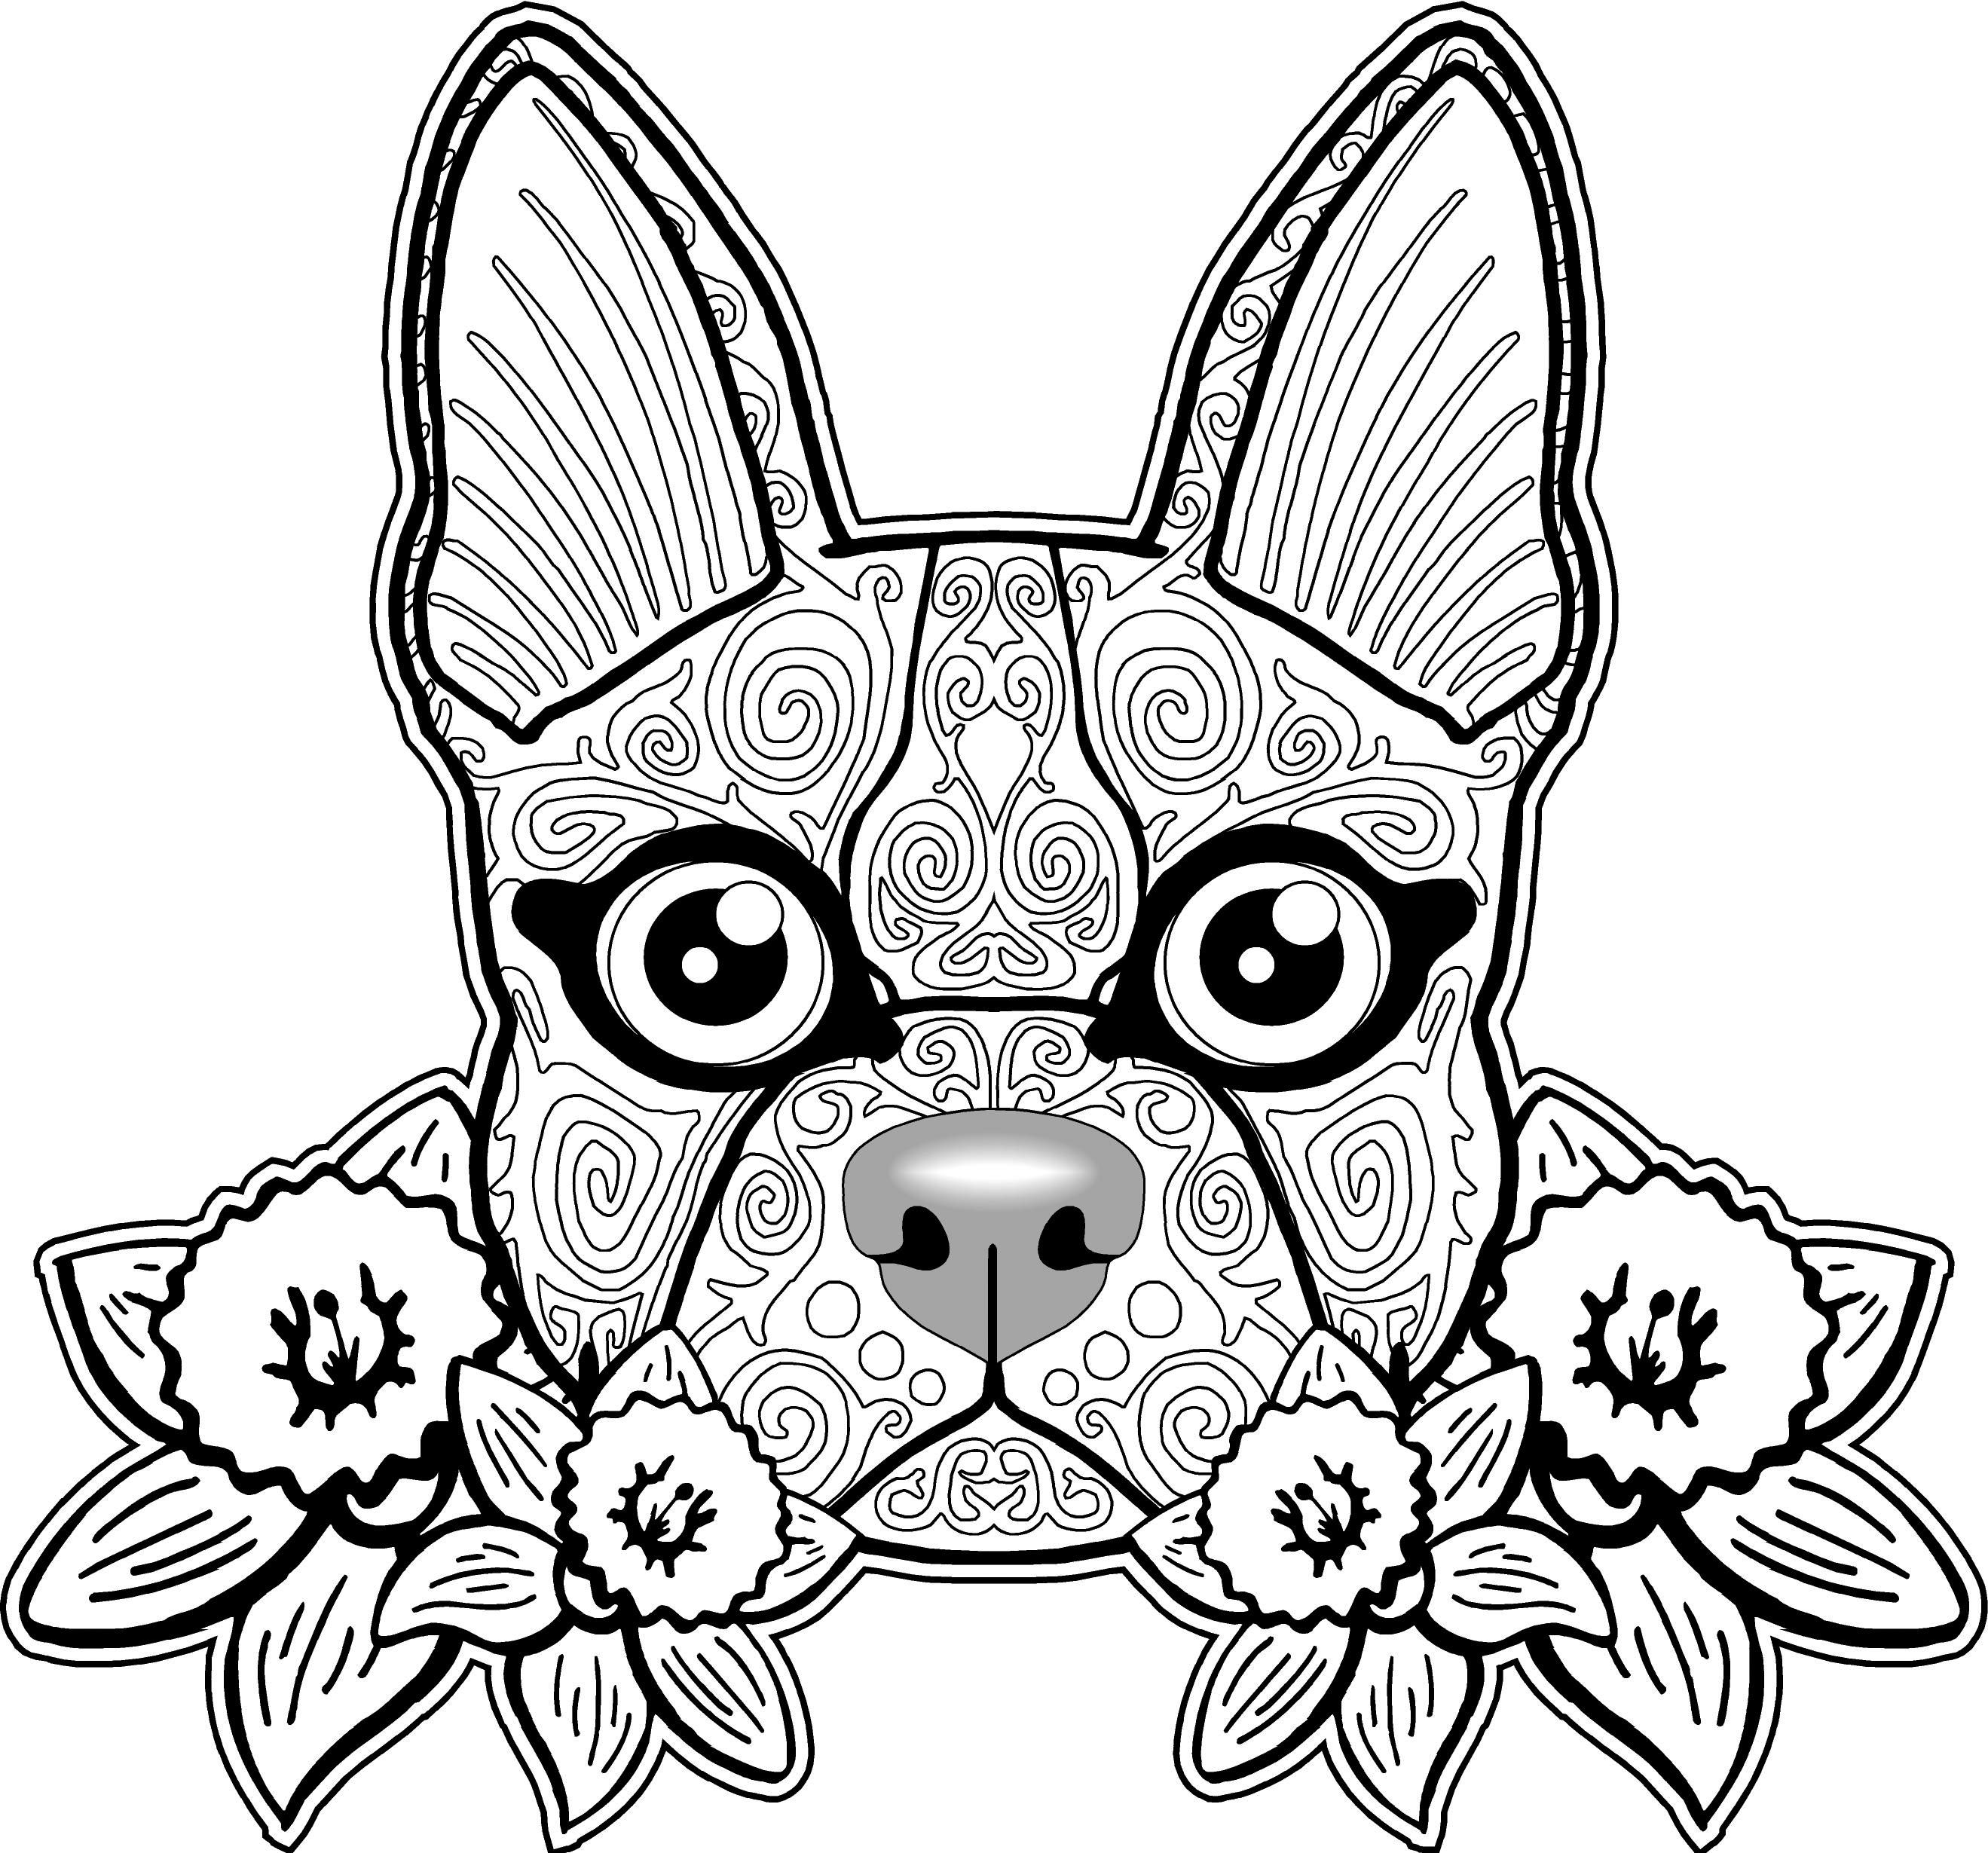 coloring pages for adults dogs dog coloring pages for adults best coloring pages for kids for coloring pages adults dogs